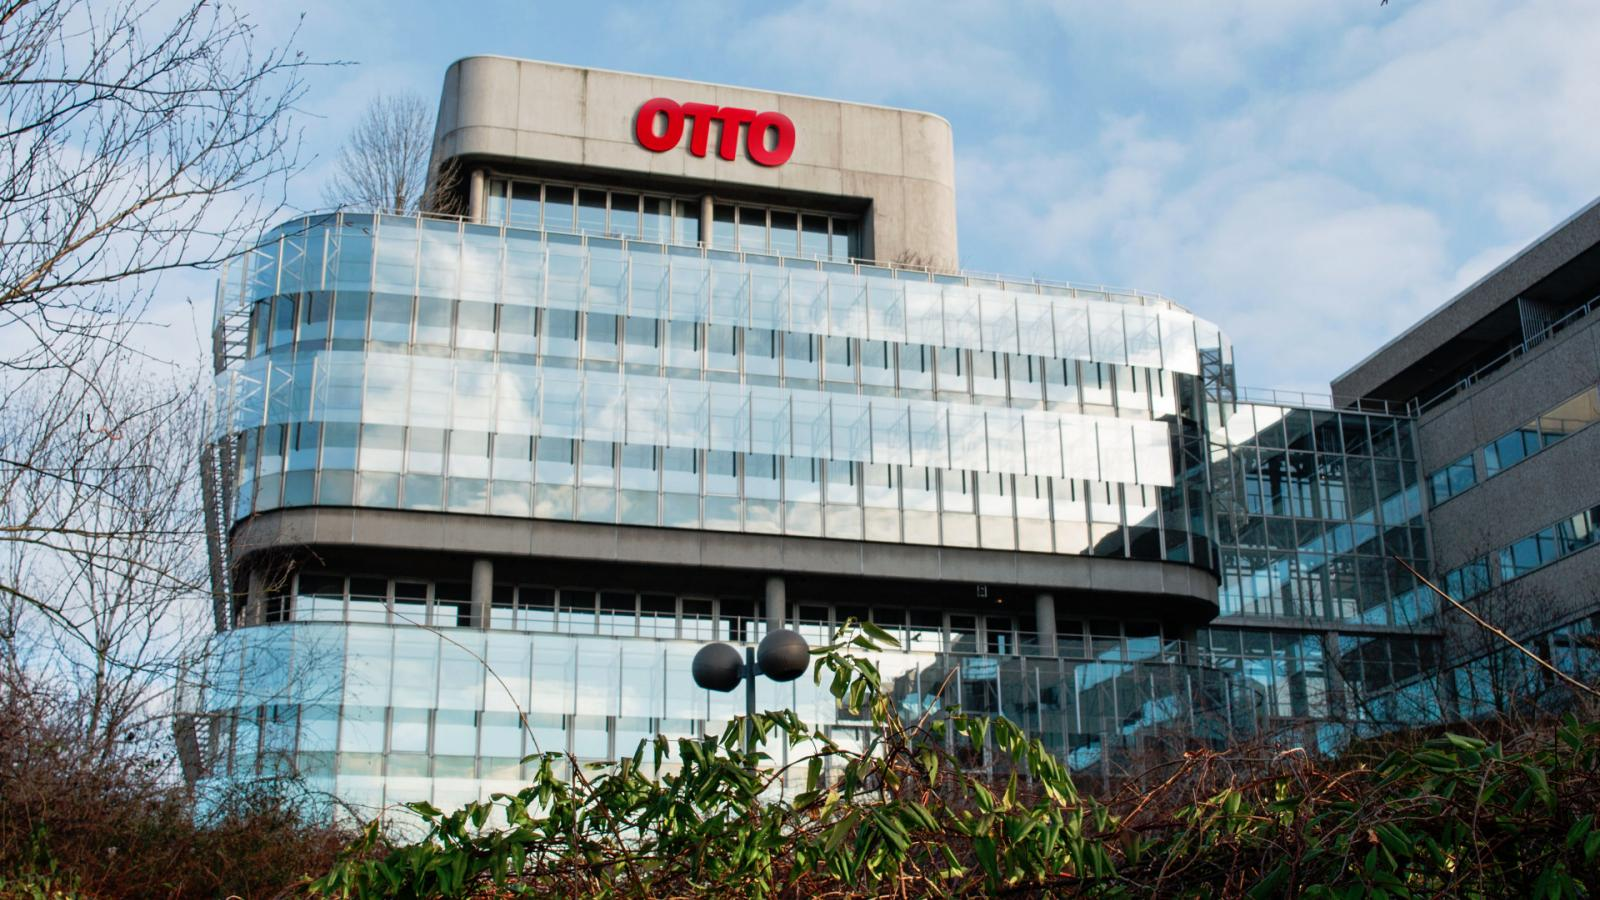 Otto Group's Headquarters